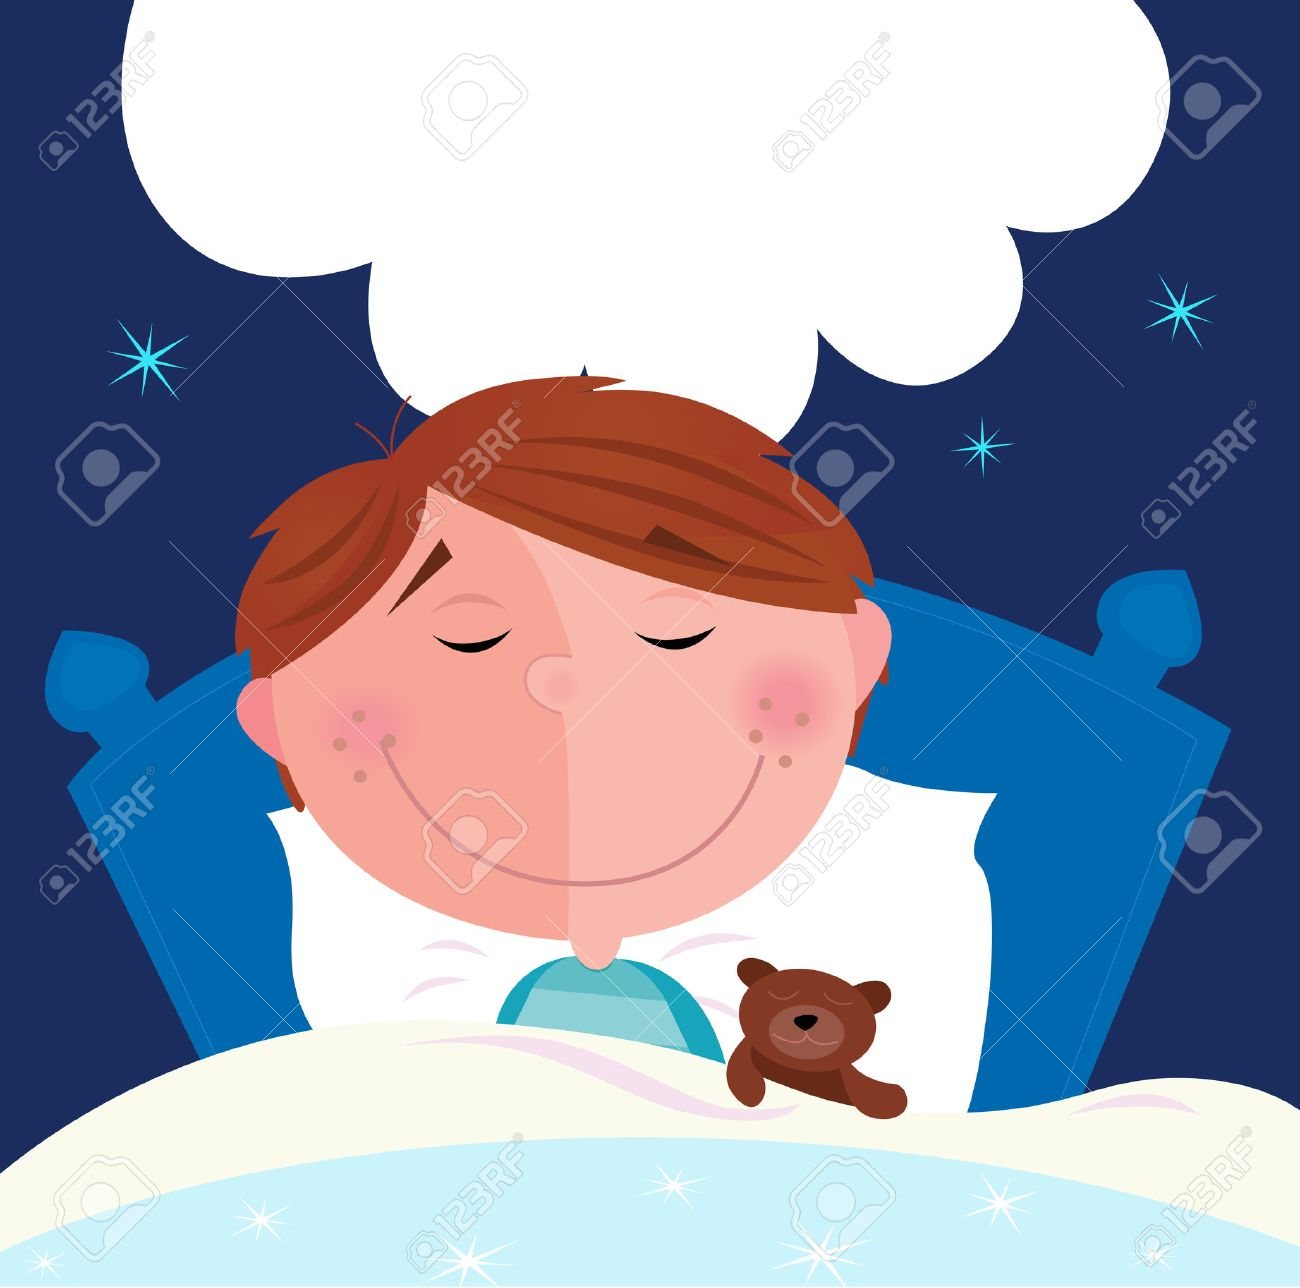 Small boy with his teddy bear sleeping in bed. Cute small boy sleeping and dreaming. Write the dream inside speech bubble! Vector Illustration. Stock Vector - 7002332